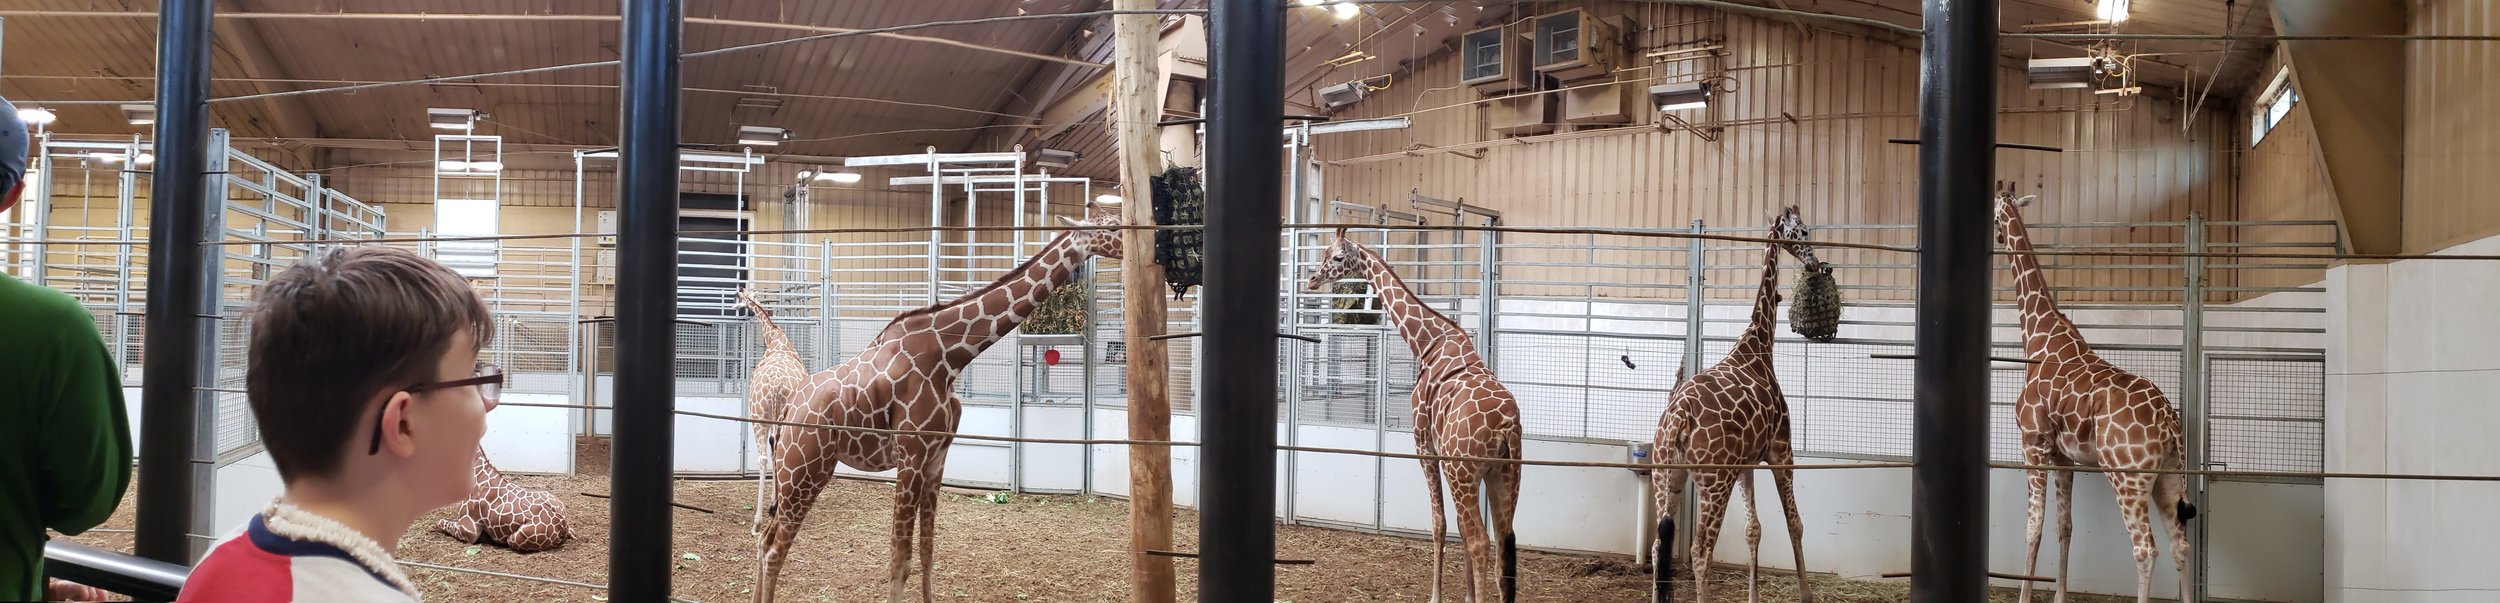 One of two large spaces for the giraffe herd.